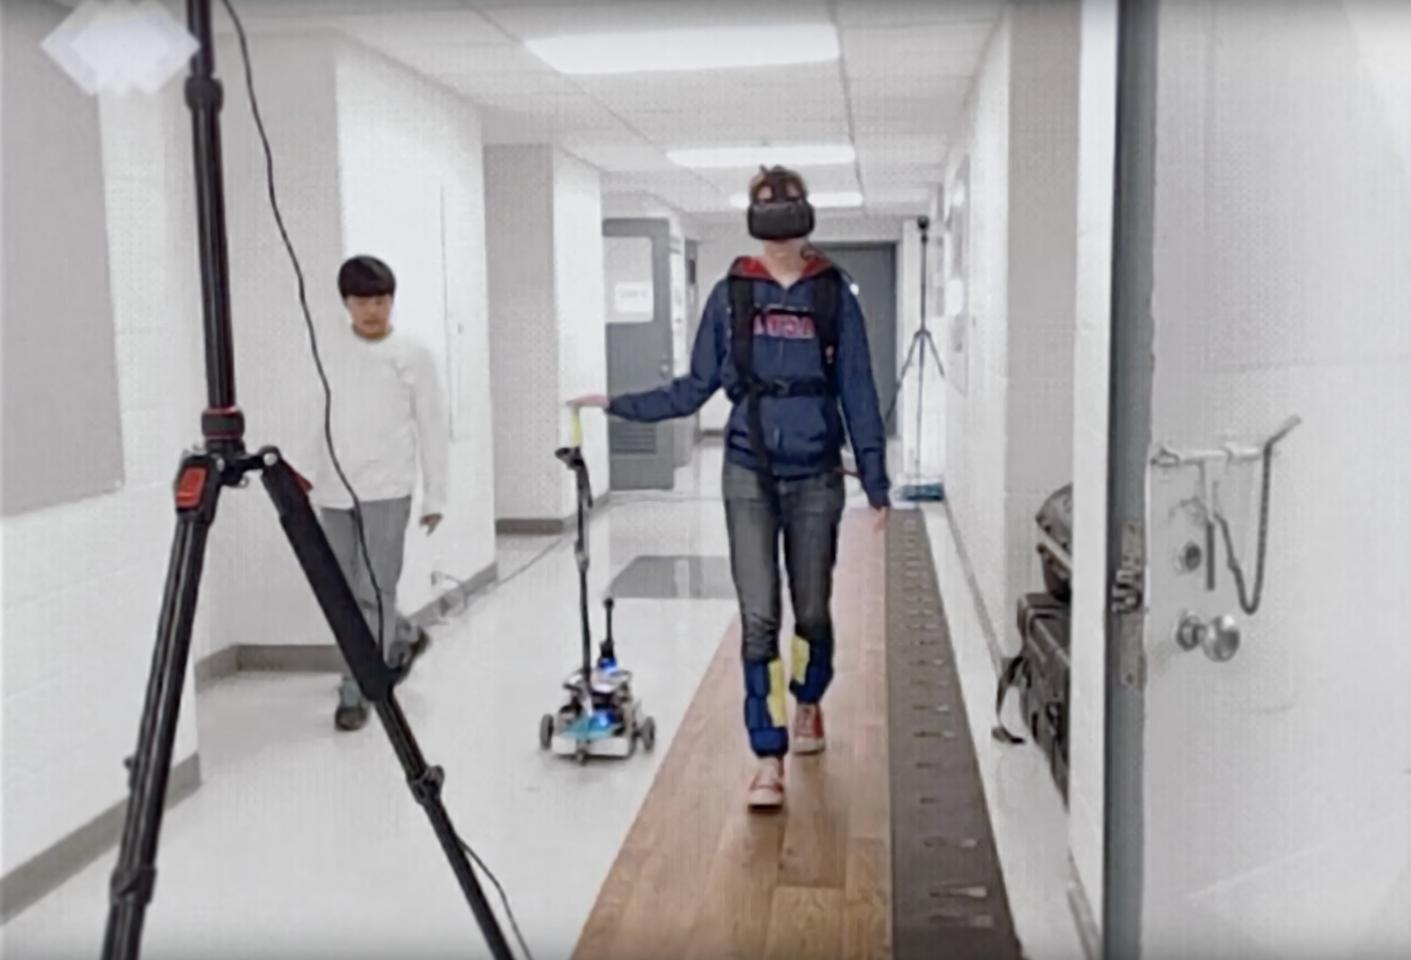 Test subjectswore a virtual reality headset which interfered with their gait